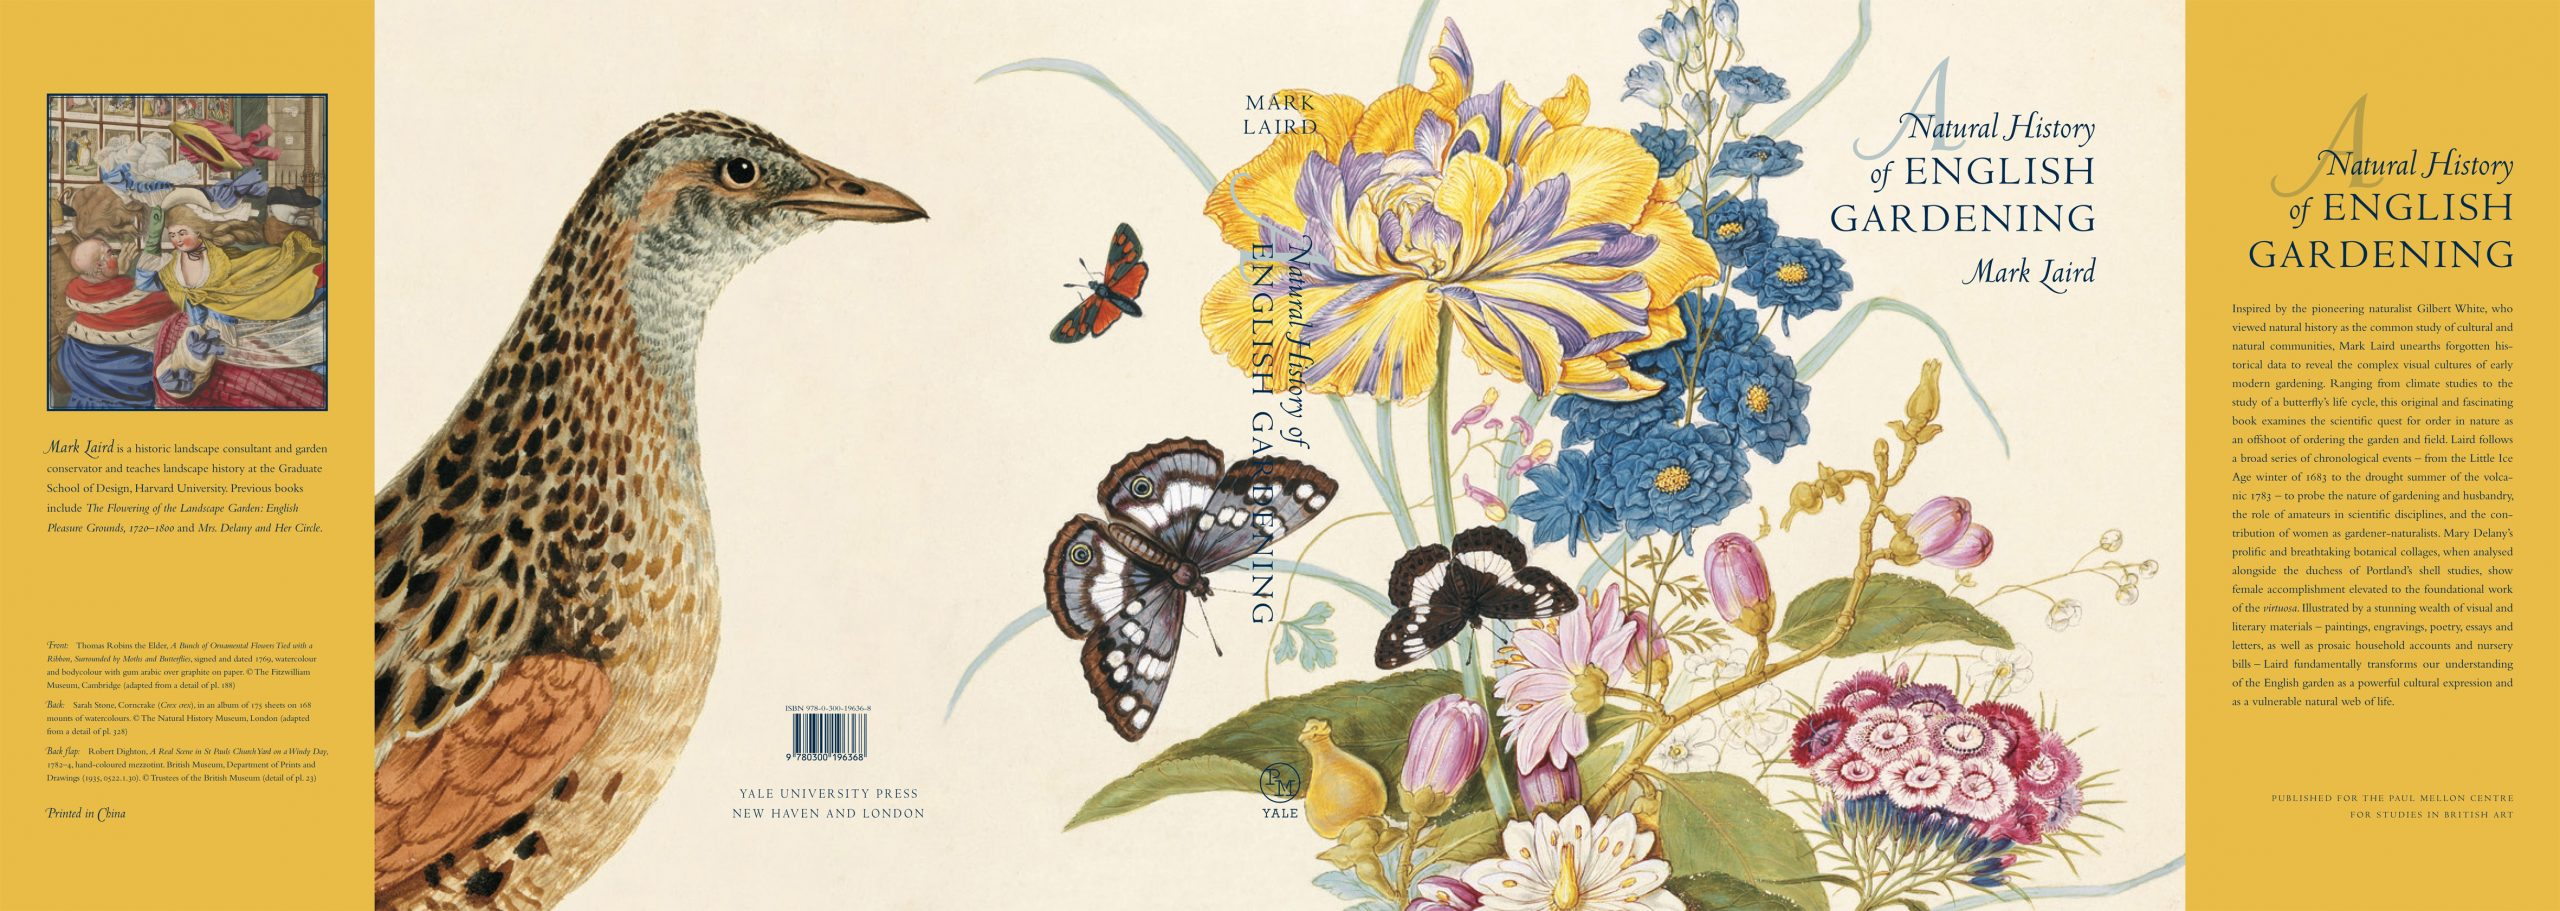 Dust jacket for the book, A Natural History of English Gardening (2015) by Mark Laird